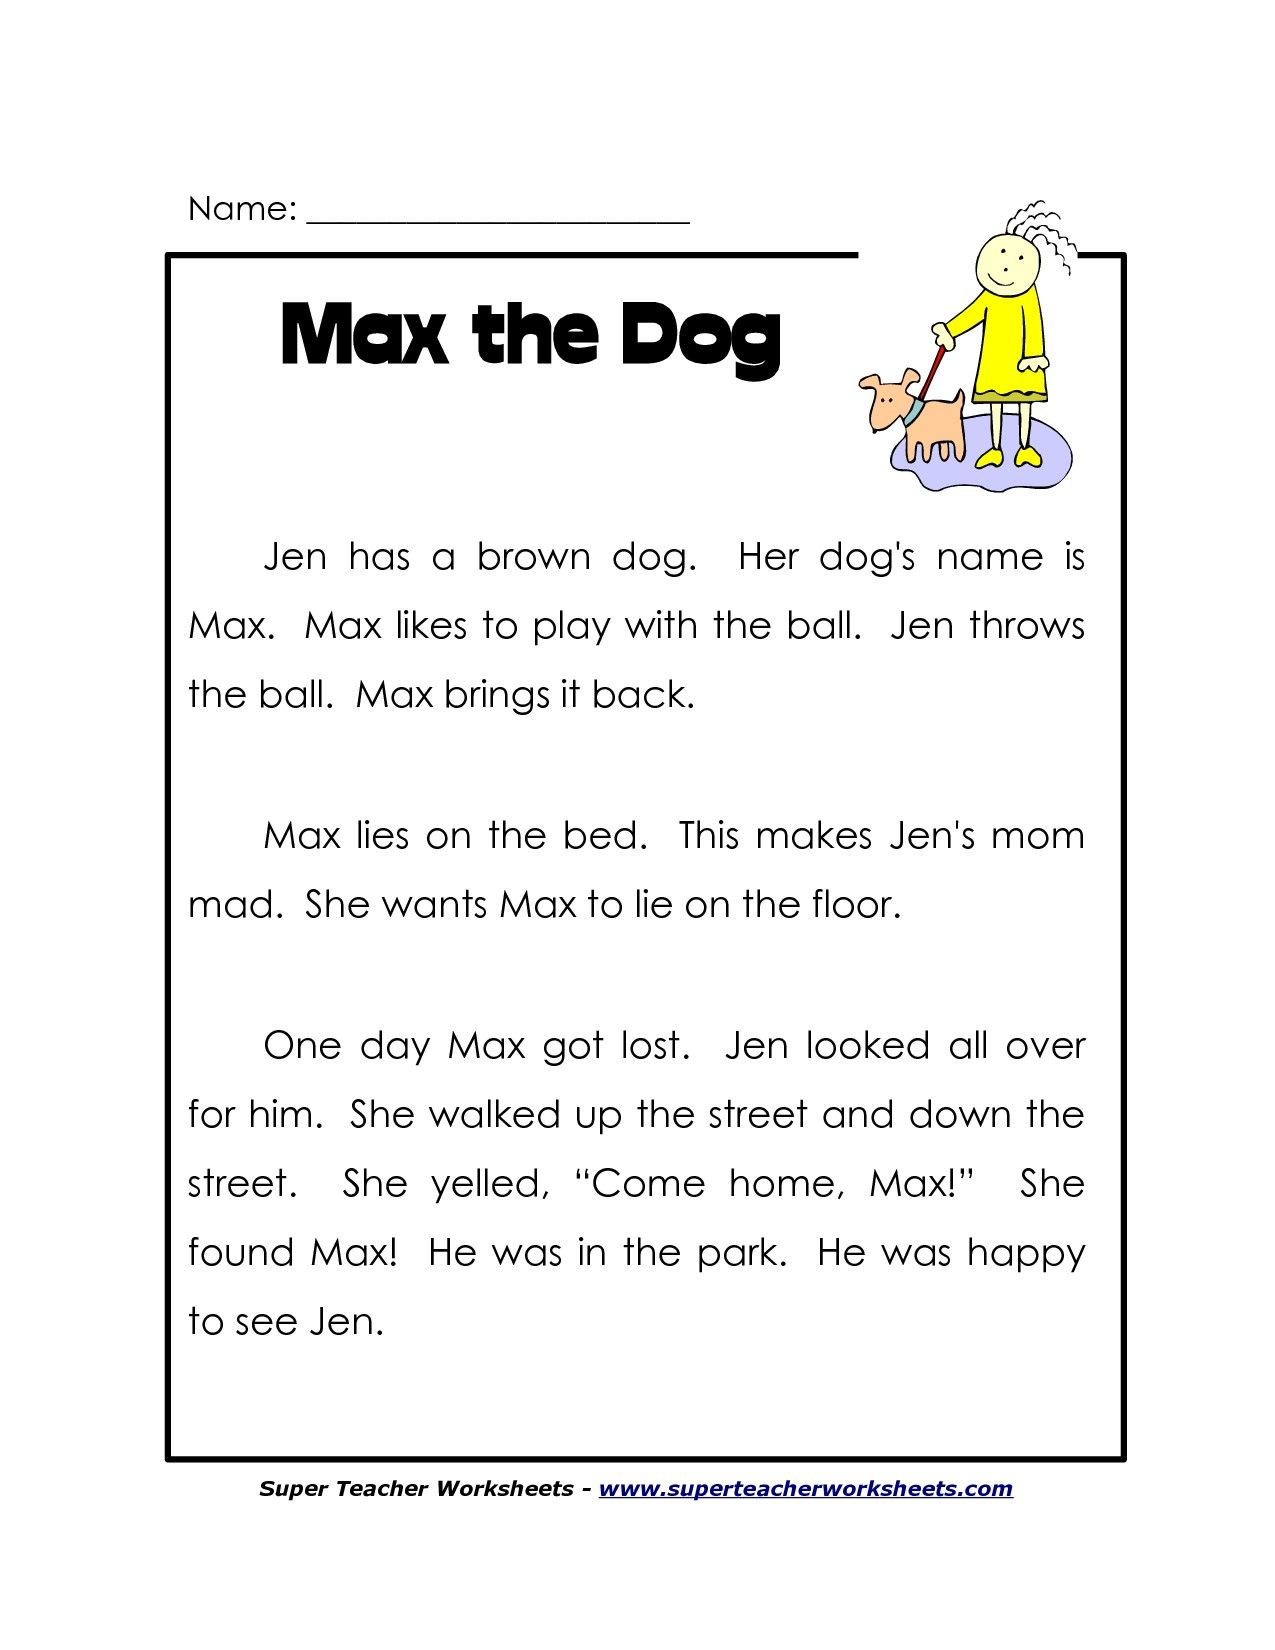 Worksheets Reading Worksheets For 1st Graders Printable reading worksheets 1st grades and on pinterest